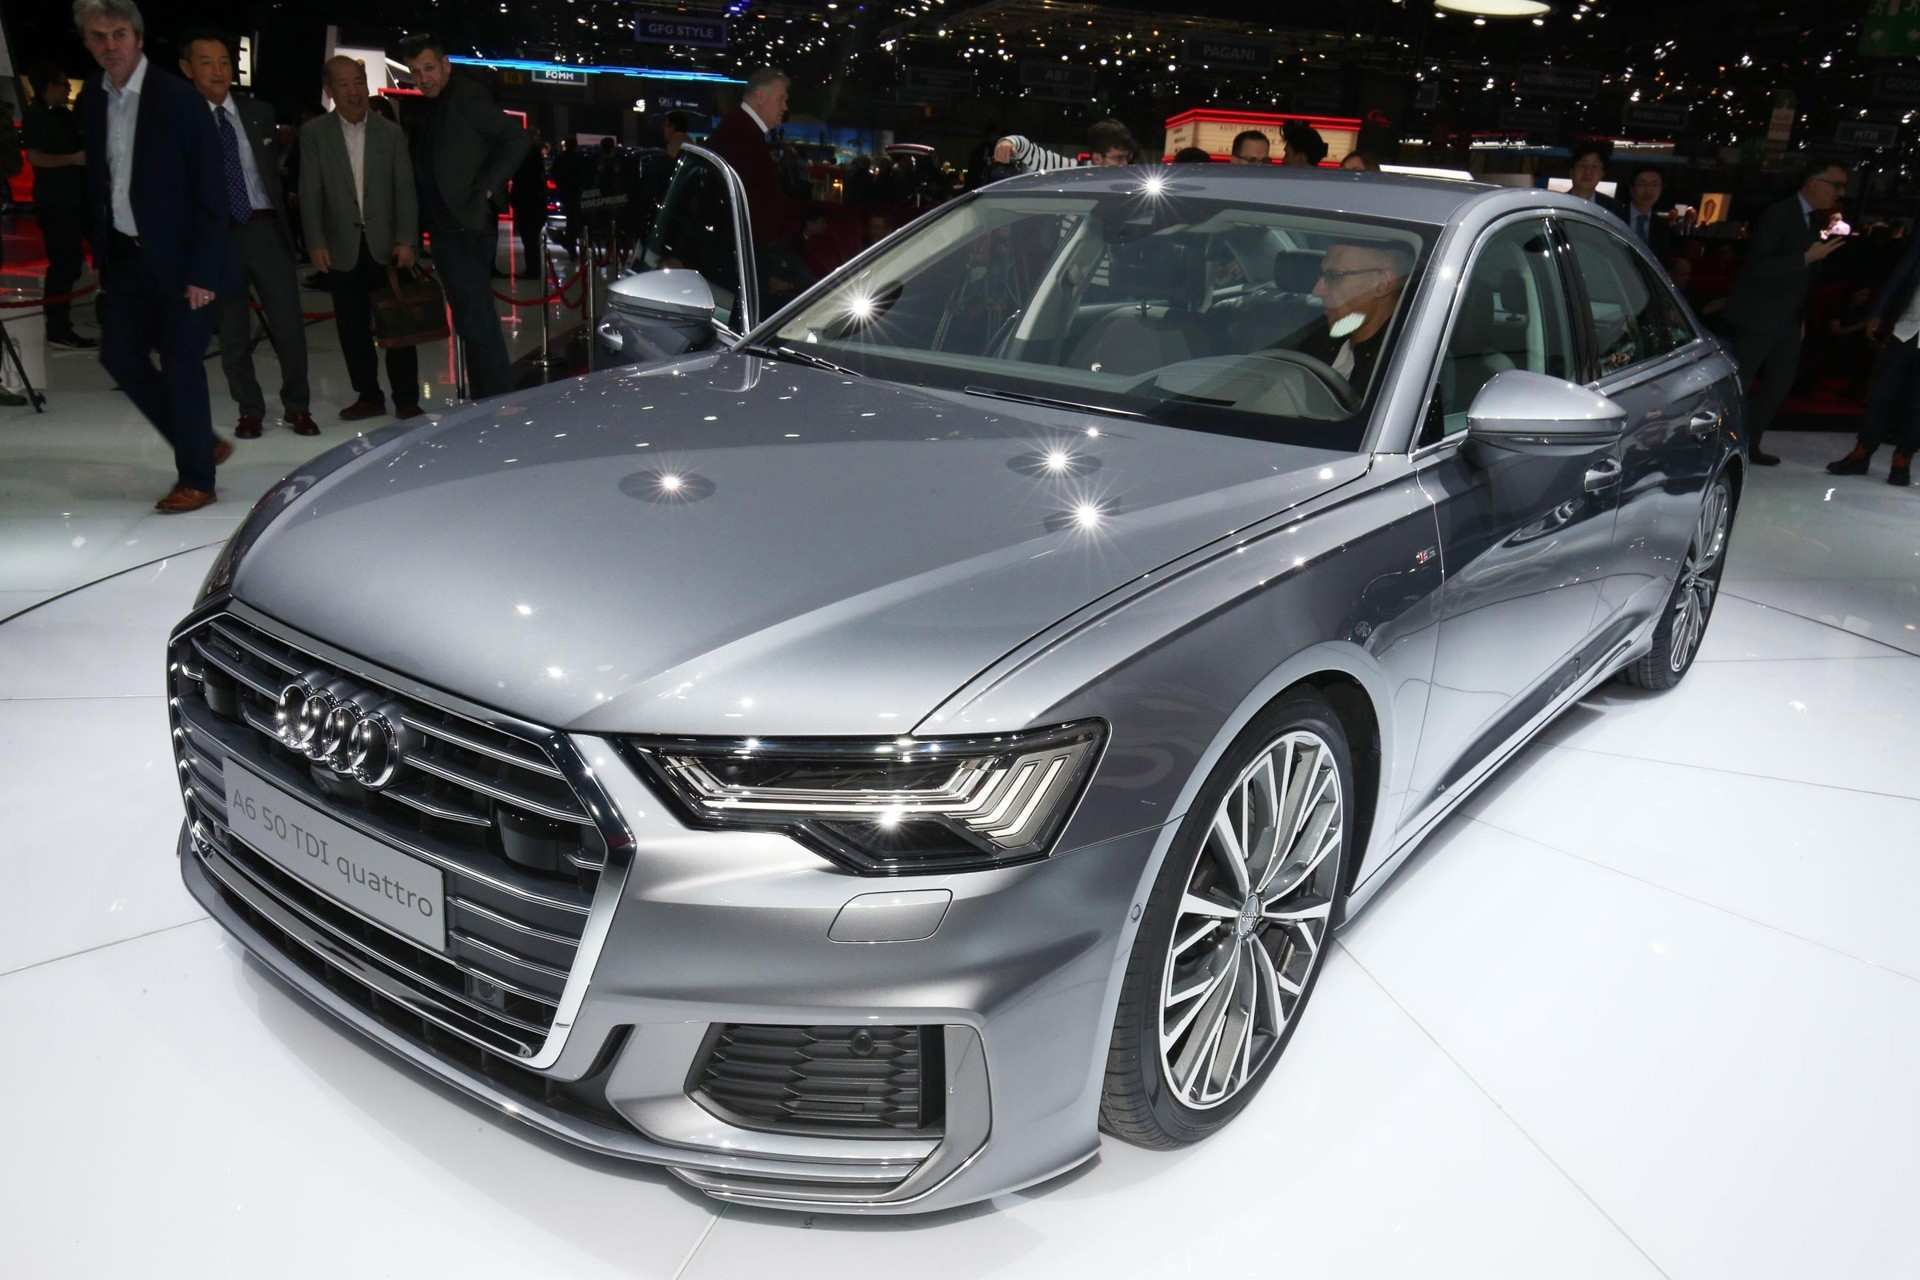 38 New Best When Does Audi Release 2019 Models Review Specs And Release Date Prices for Best When Does Audi Release 2019 Models Review Specs And Release Date